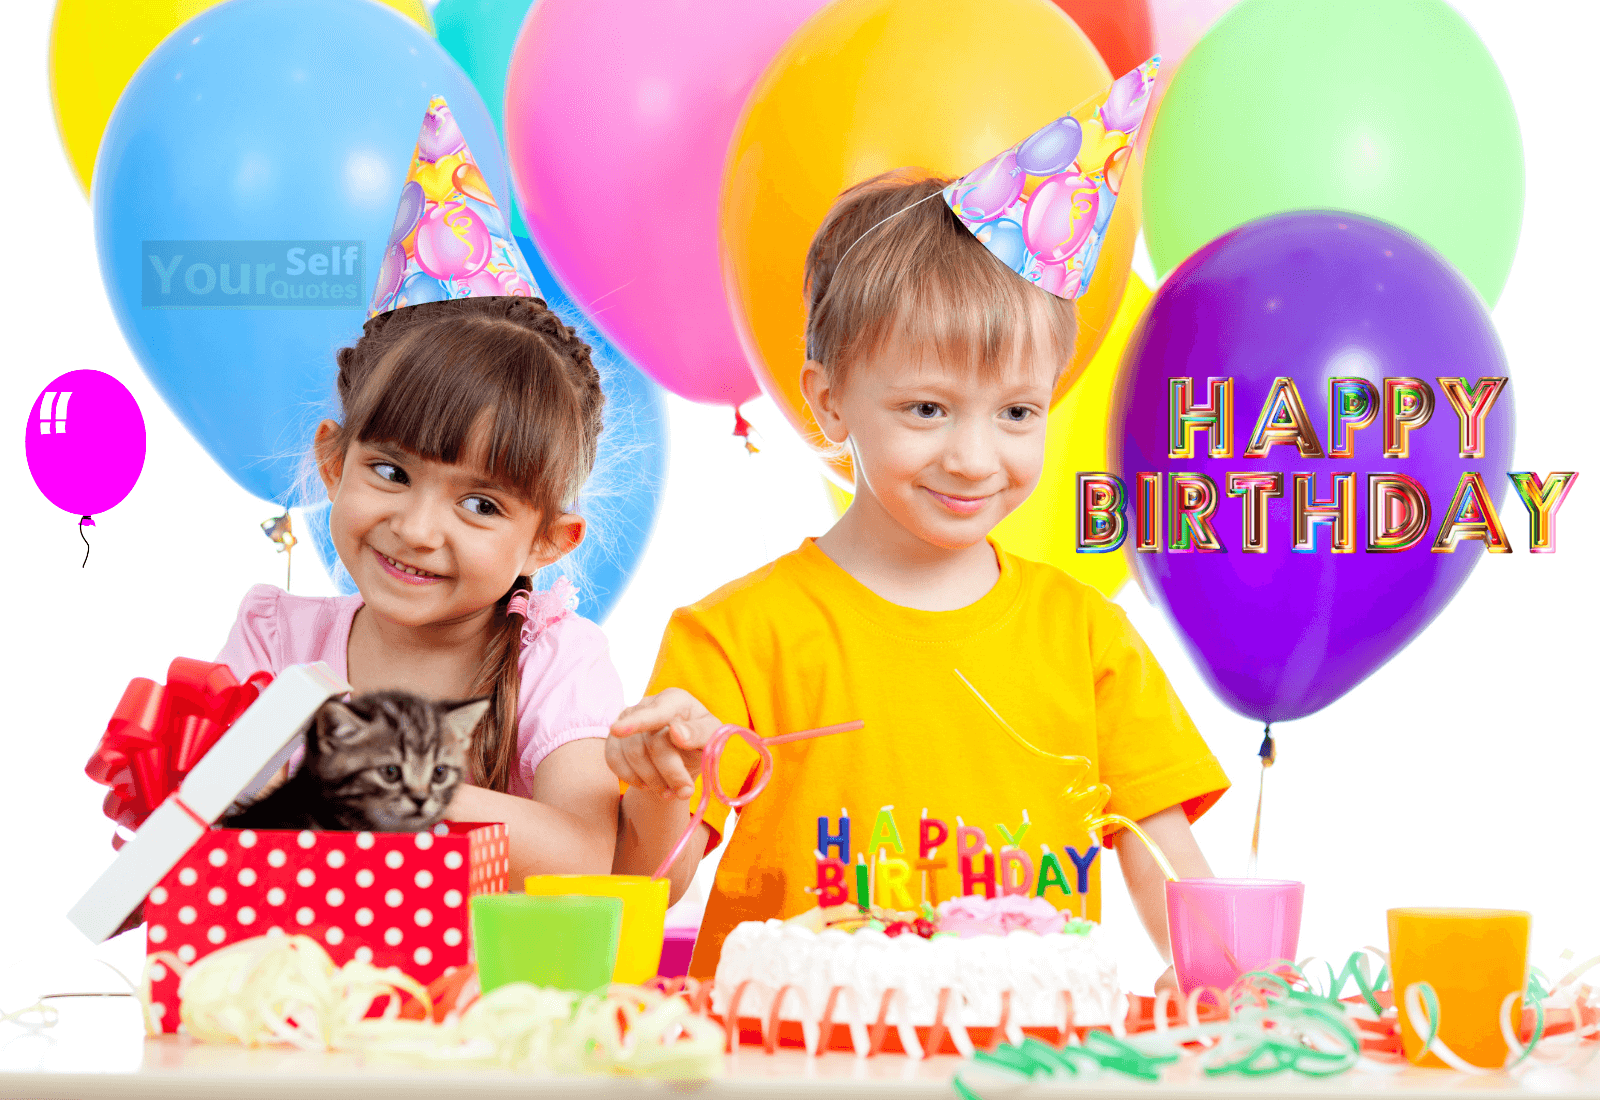 Best Happy Birthday Wallpaper images